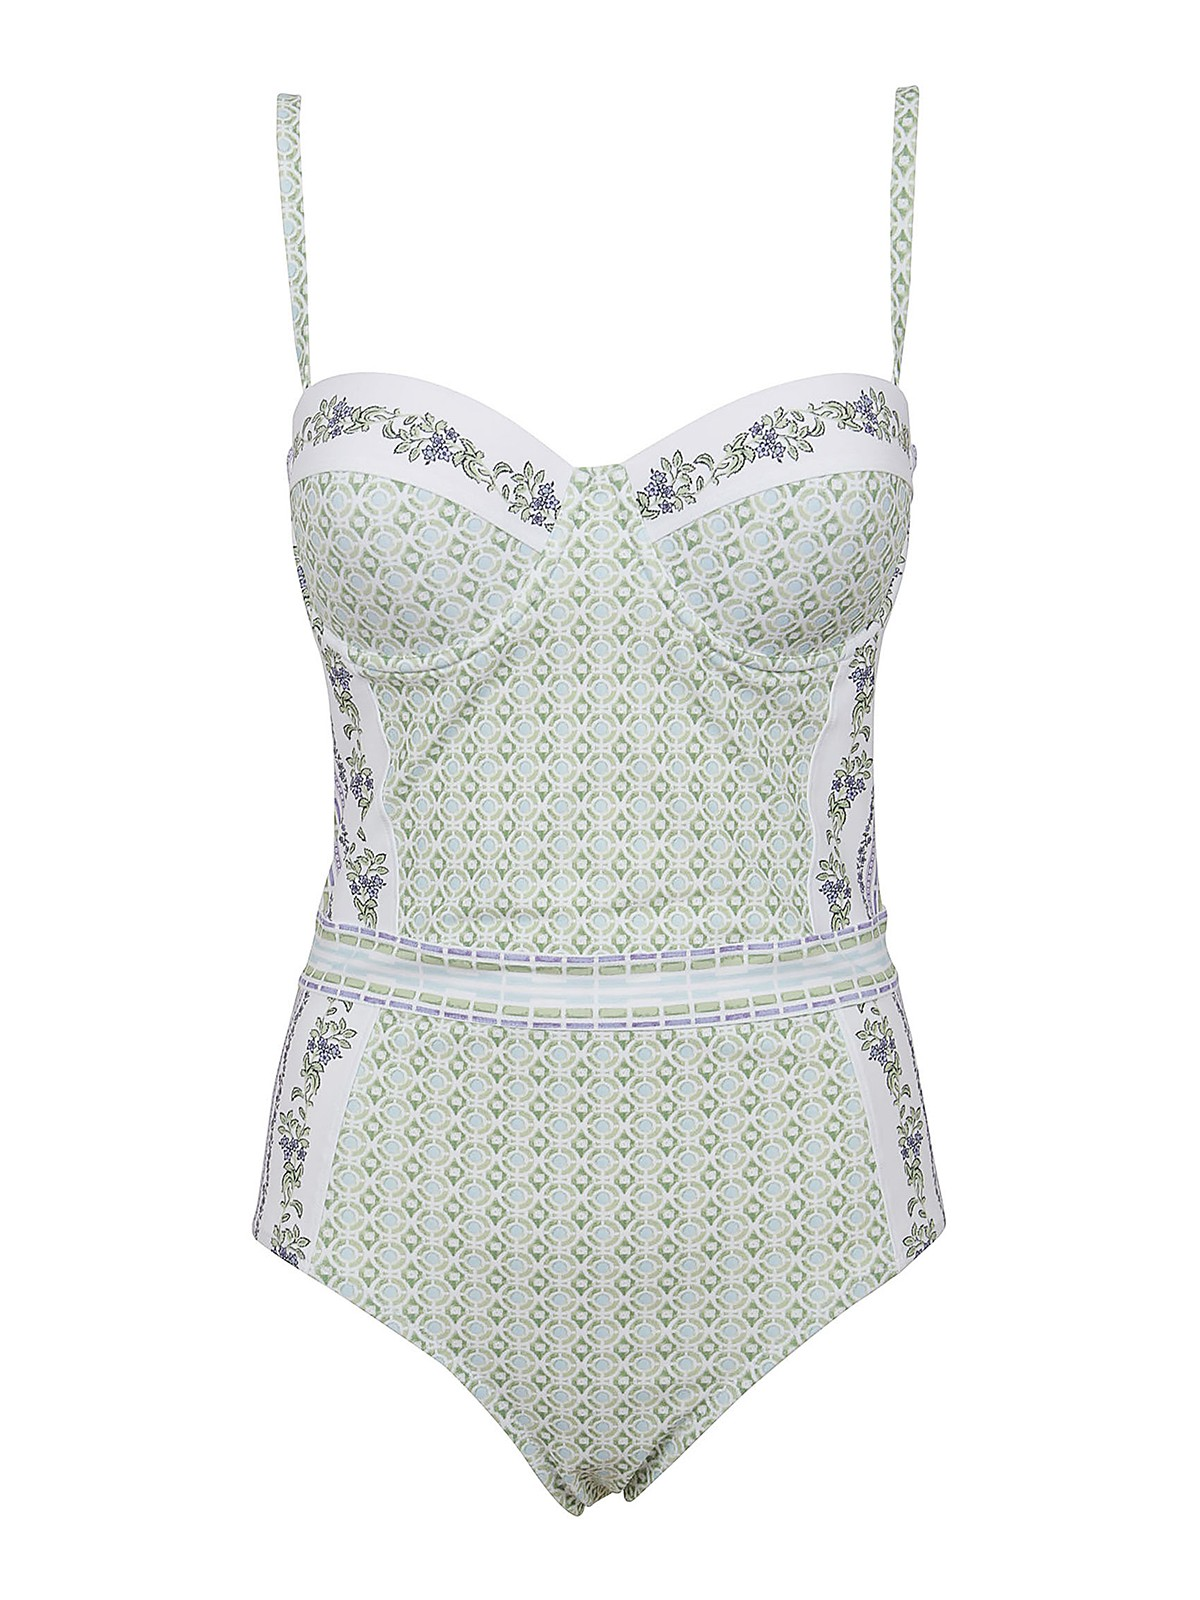 Tory Burch One-pieces LIPSI FLORAL ONE-PIECE